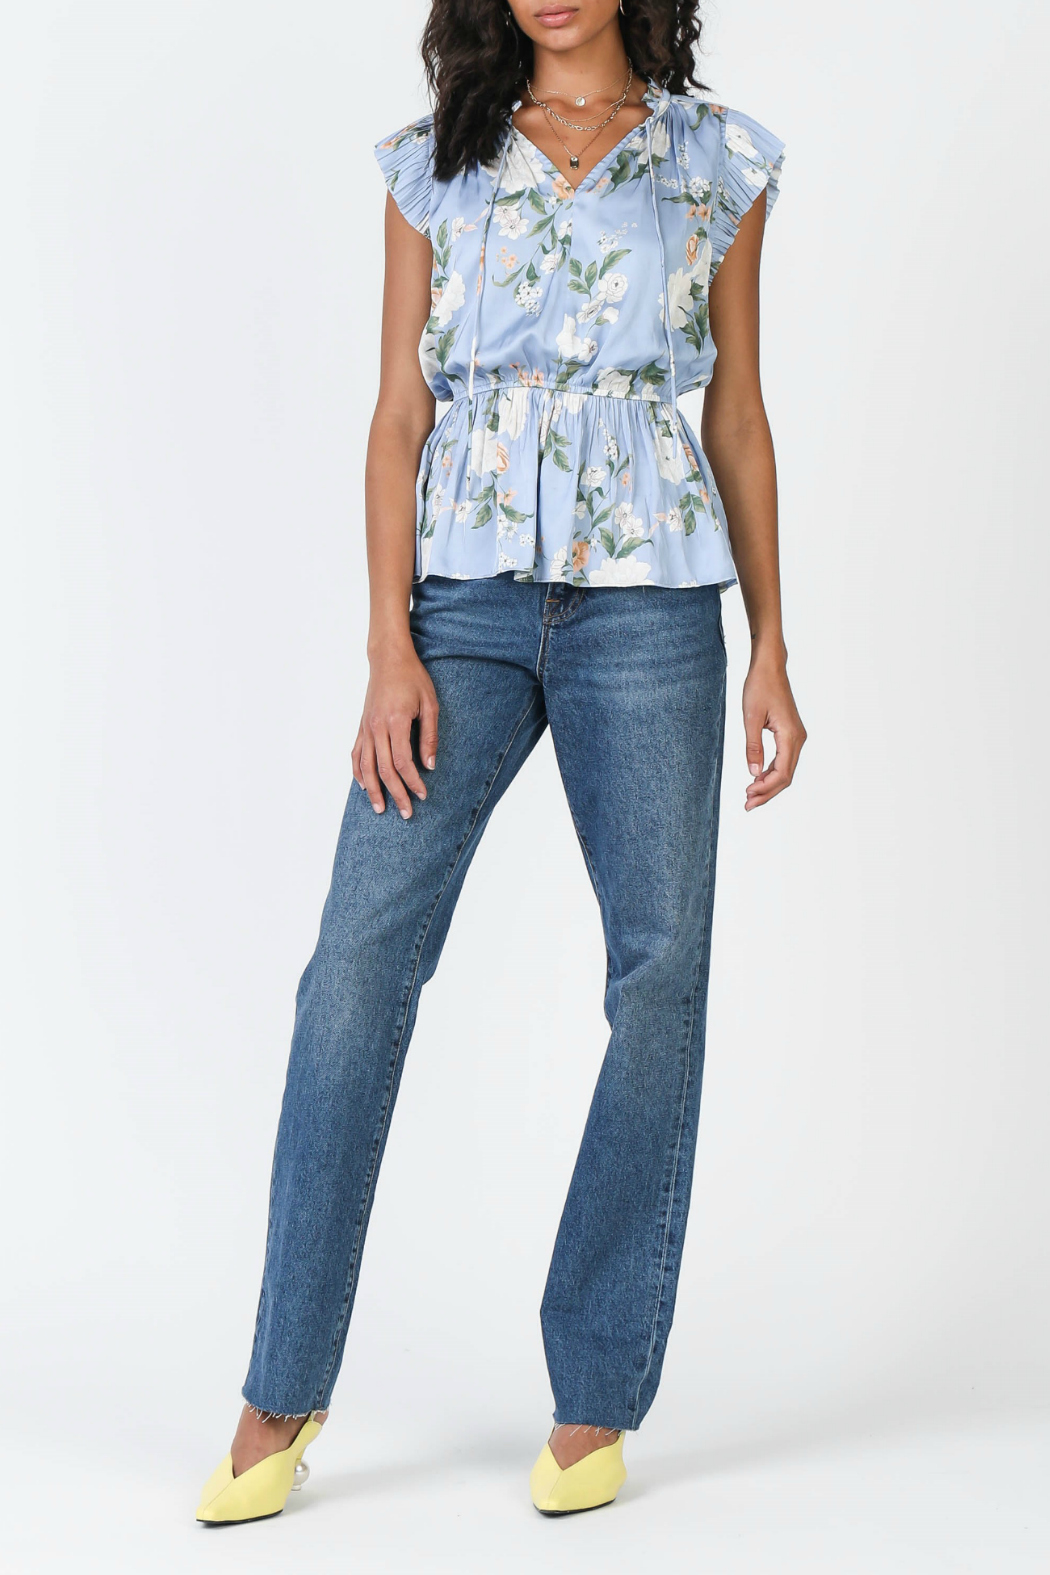 Current Air Floral print pleated top - Main Image